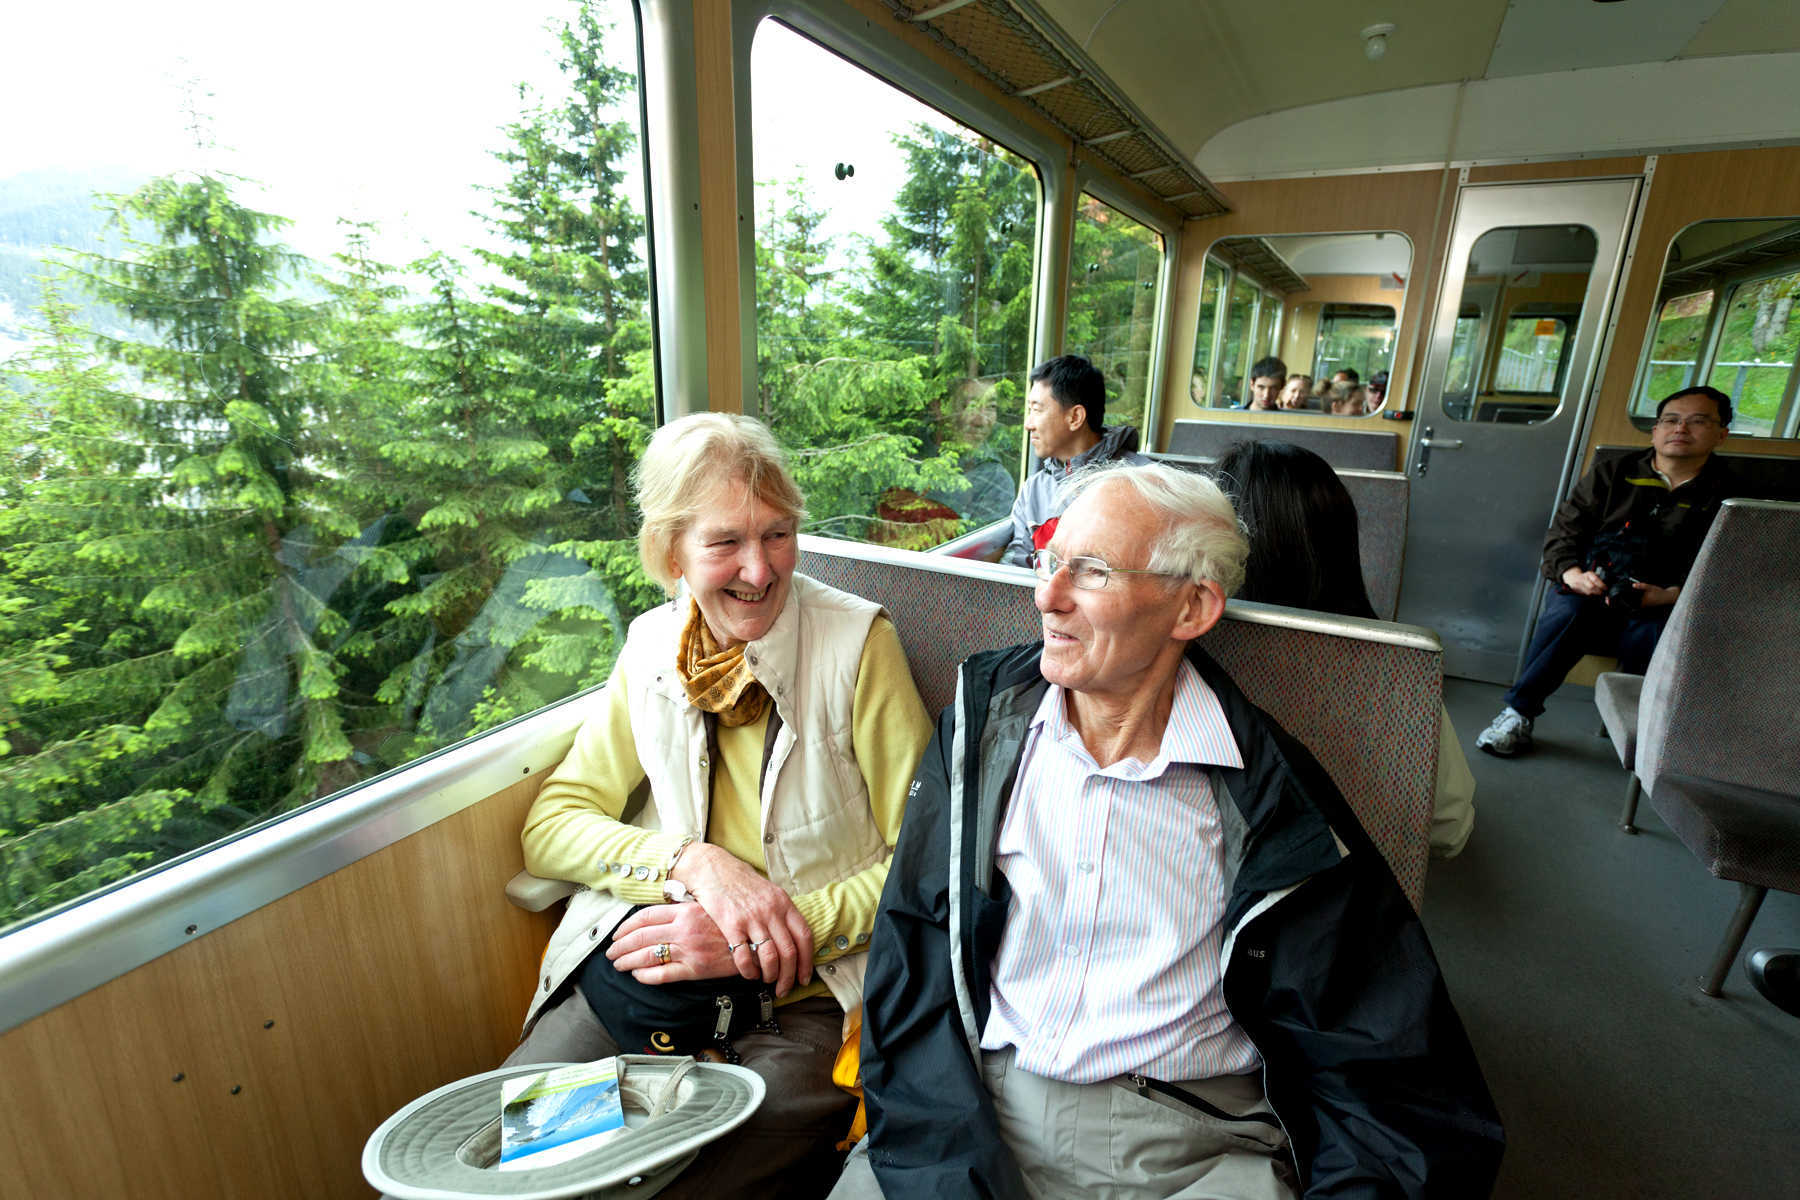 Train Travelers, Berner Oberland, Switzerland